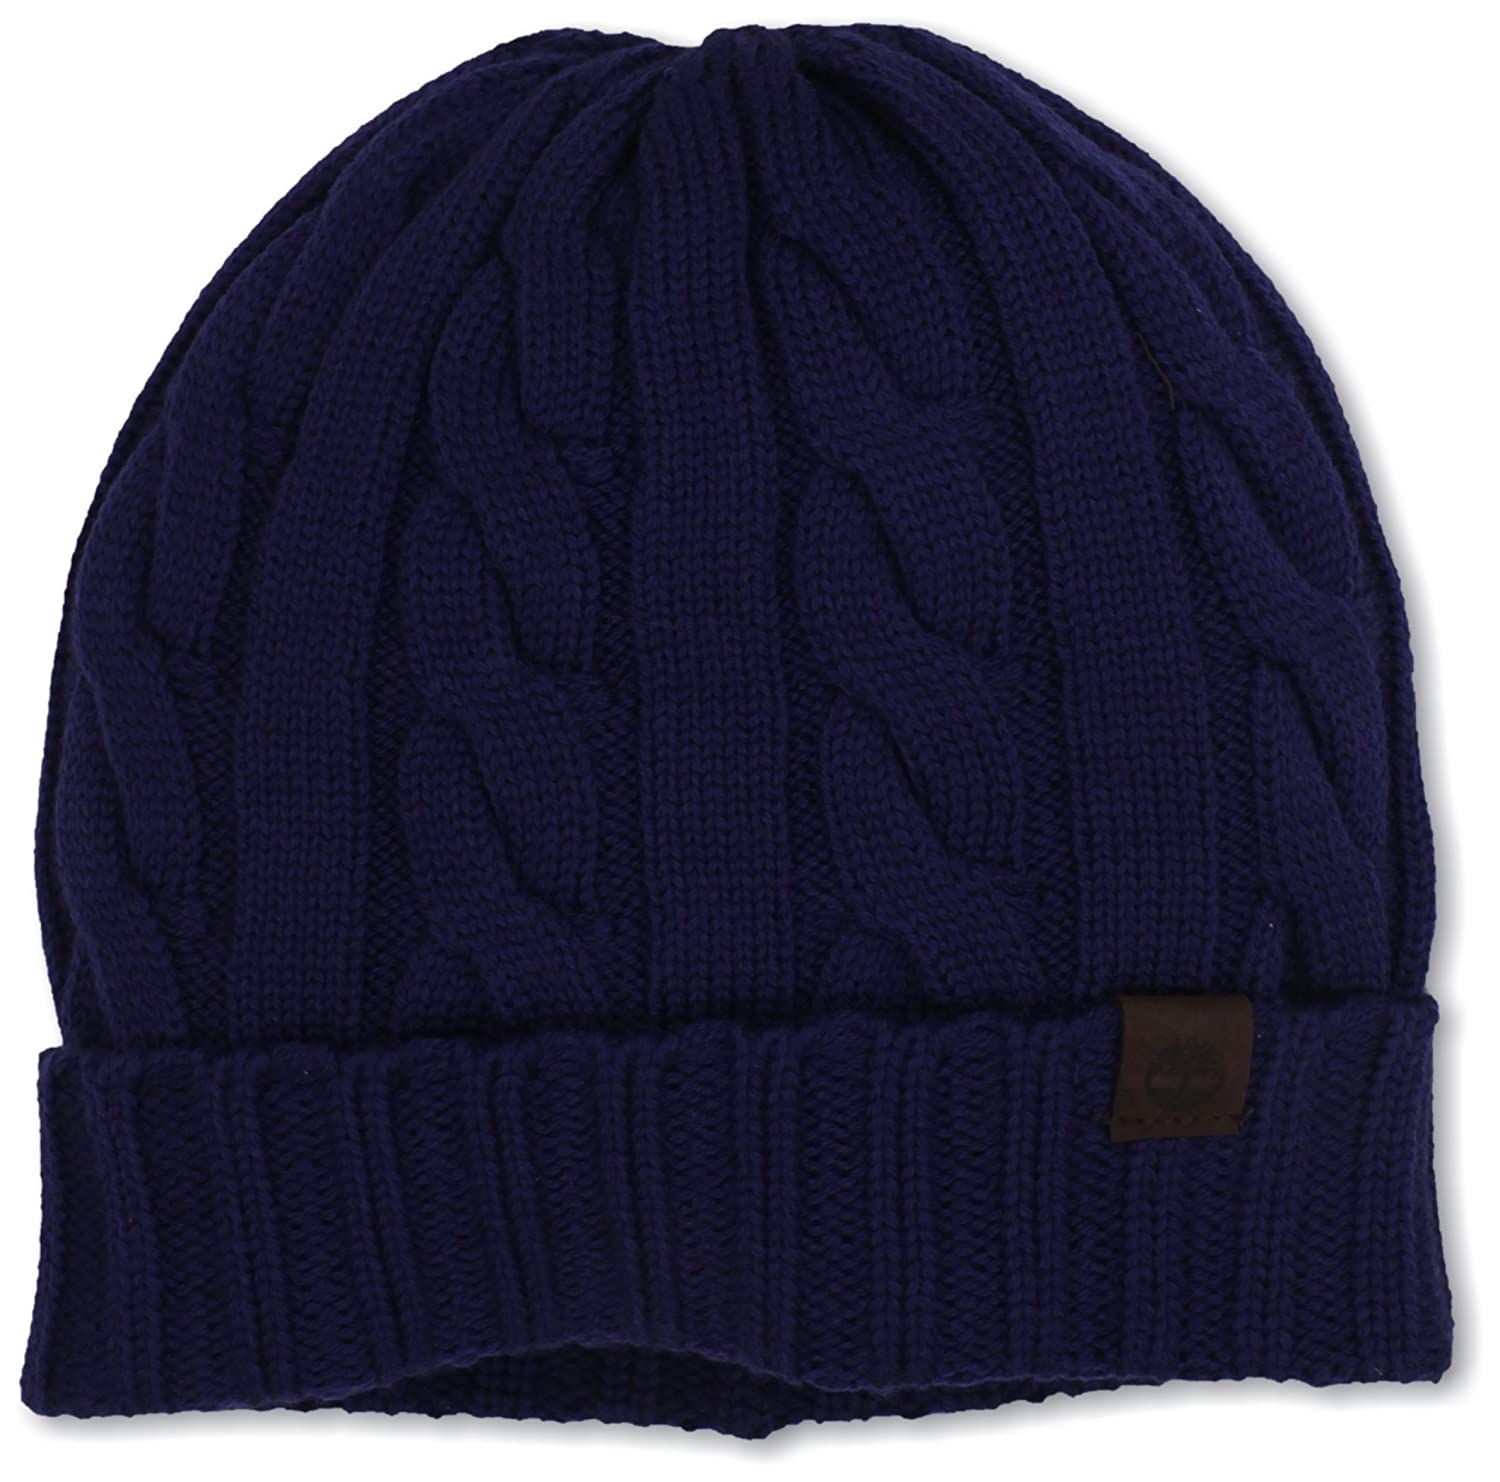 Timberland Men s Merino Wool Cable Knit Cuff Beanie at Amazon Men s  Clothing store  43be71449ede